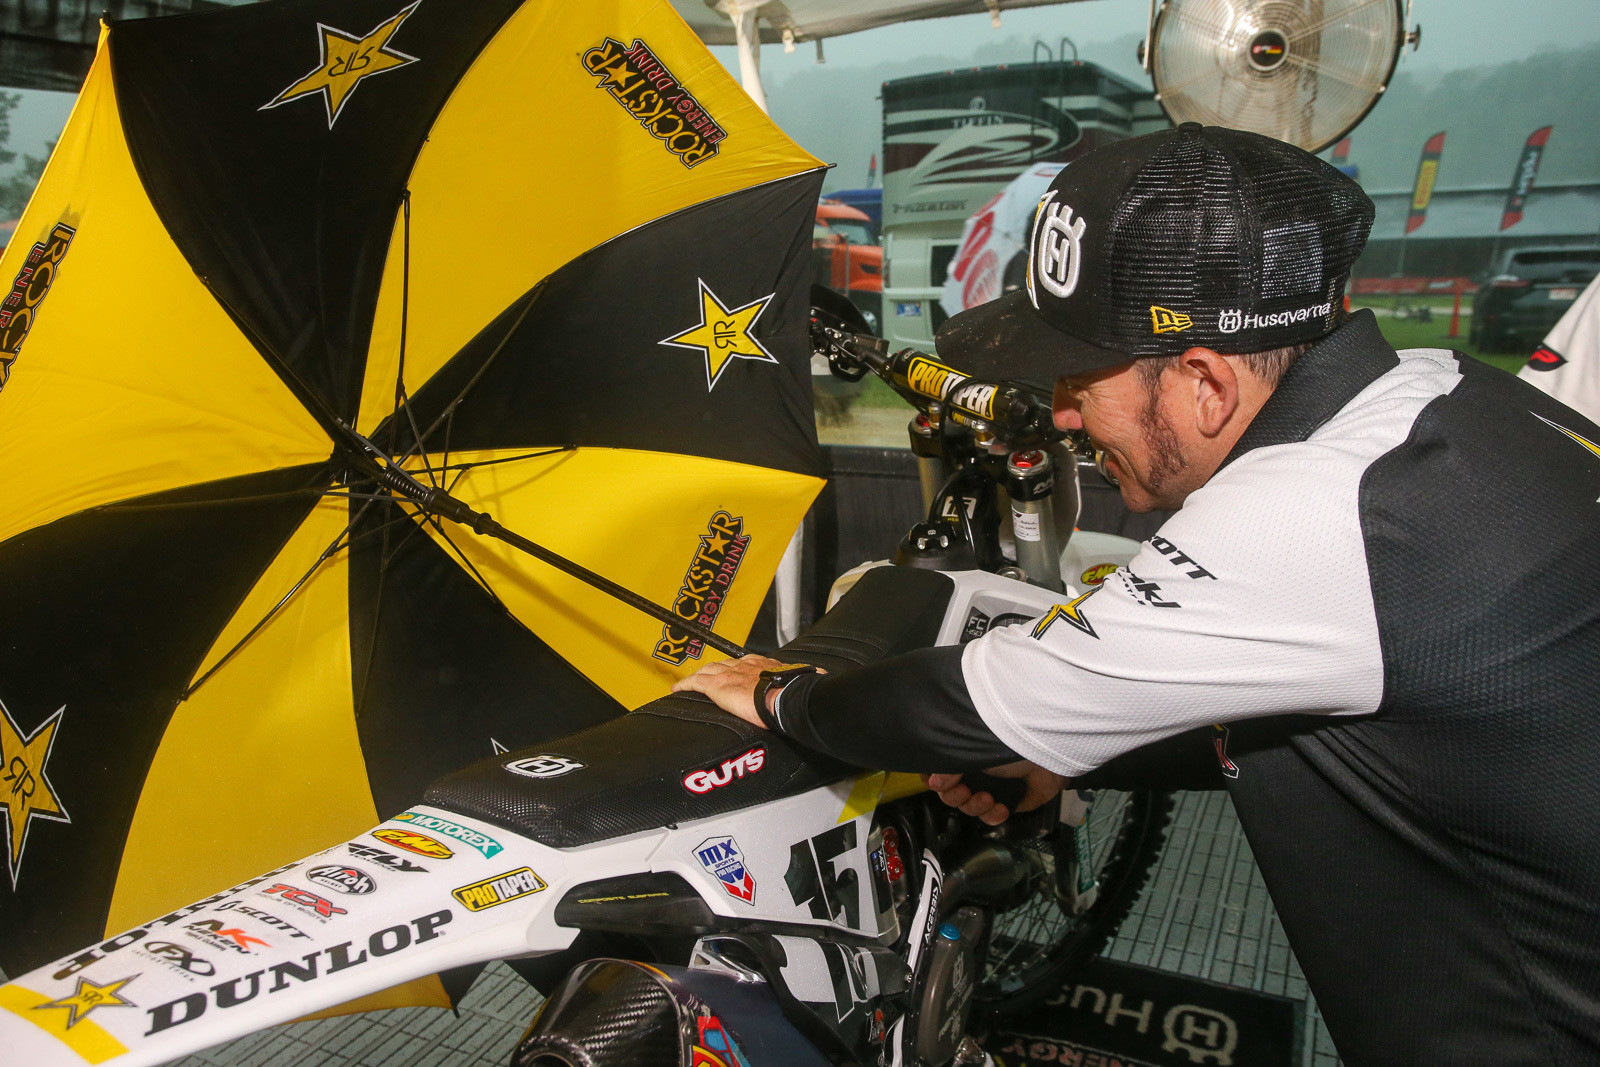 At one point, rain was coming down so hard (and sideways) that even under the Rockstar Energy Racing Husqvarna awning, Damon Conkright was having to use an umbrella to keep it off of Dean Wilson's.